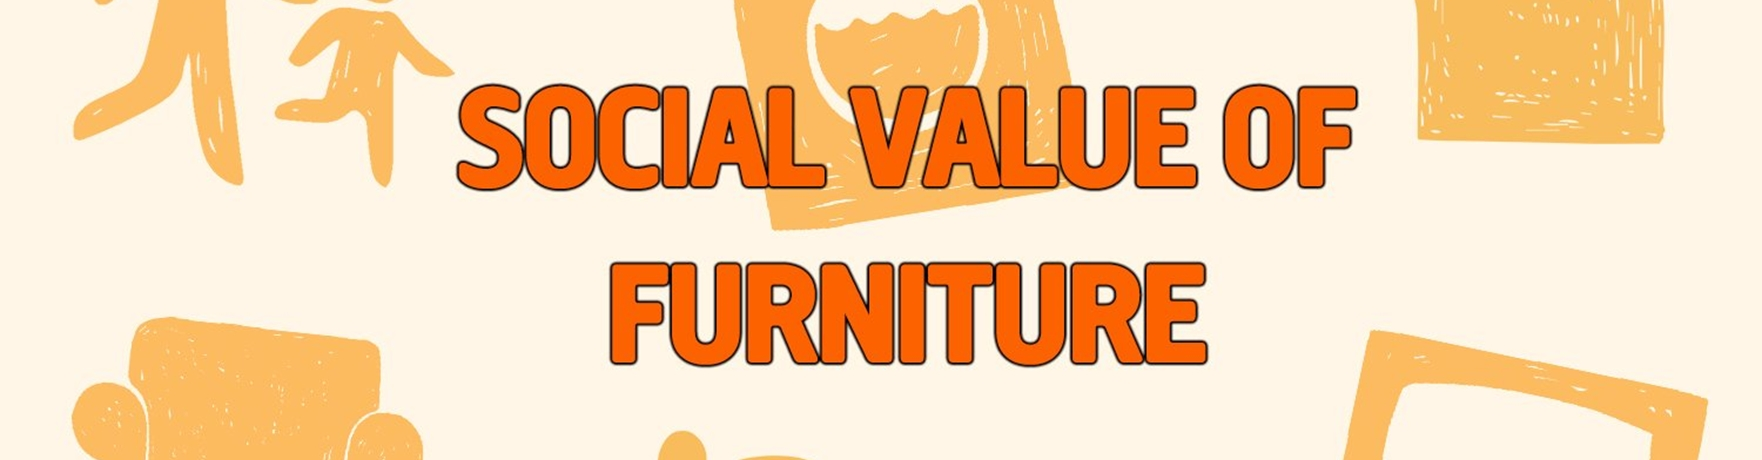 End Furniture Poverty Survey